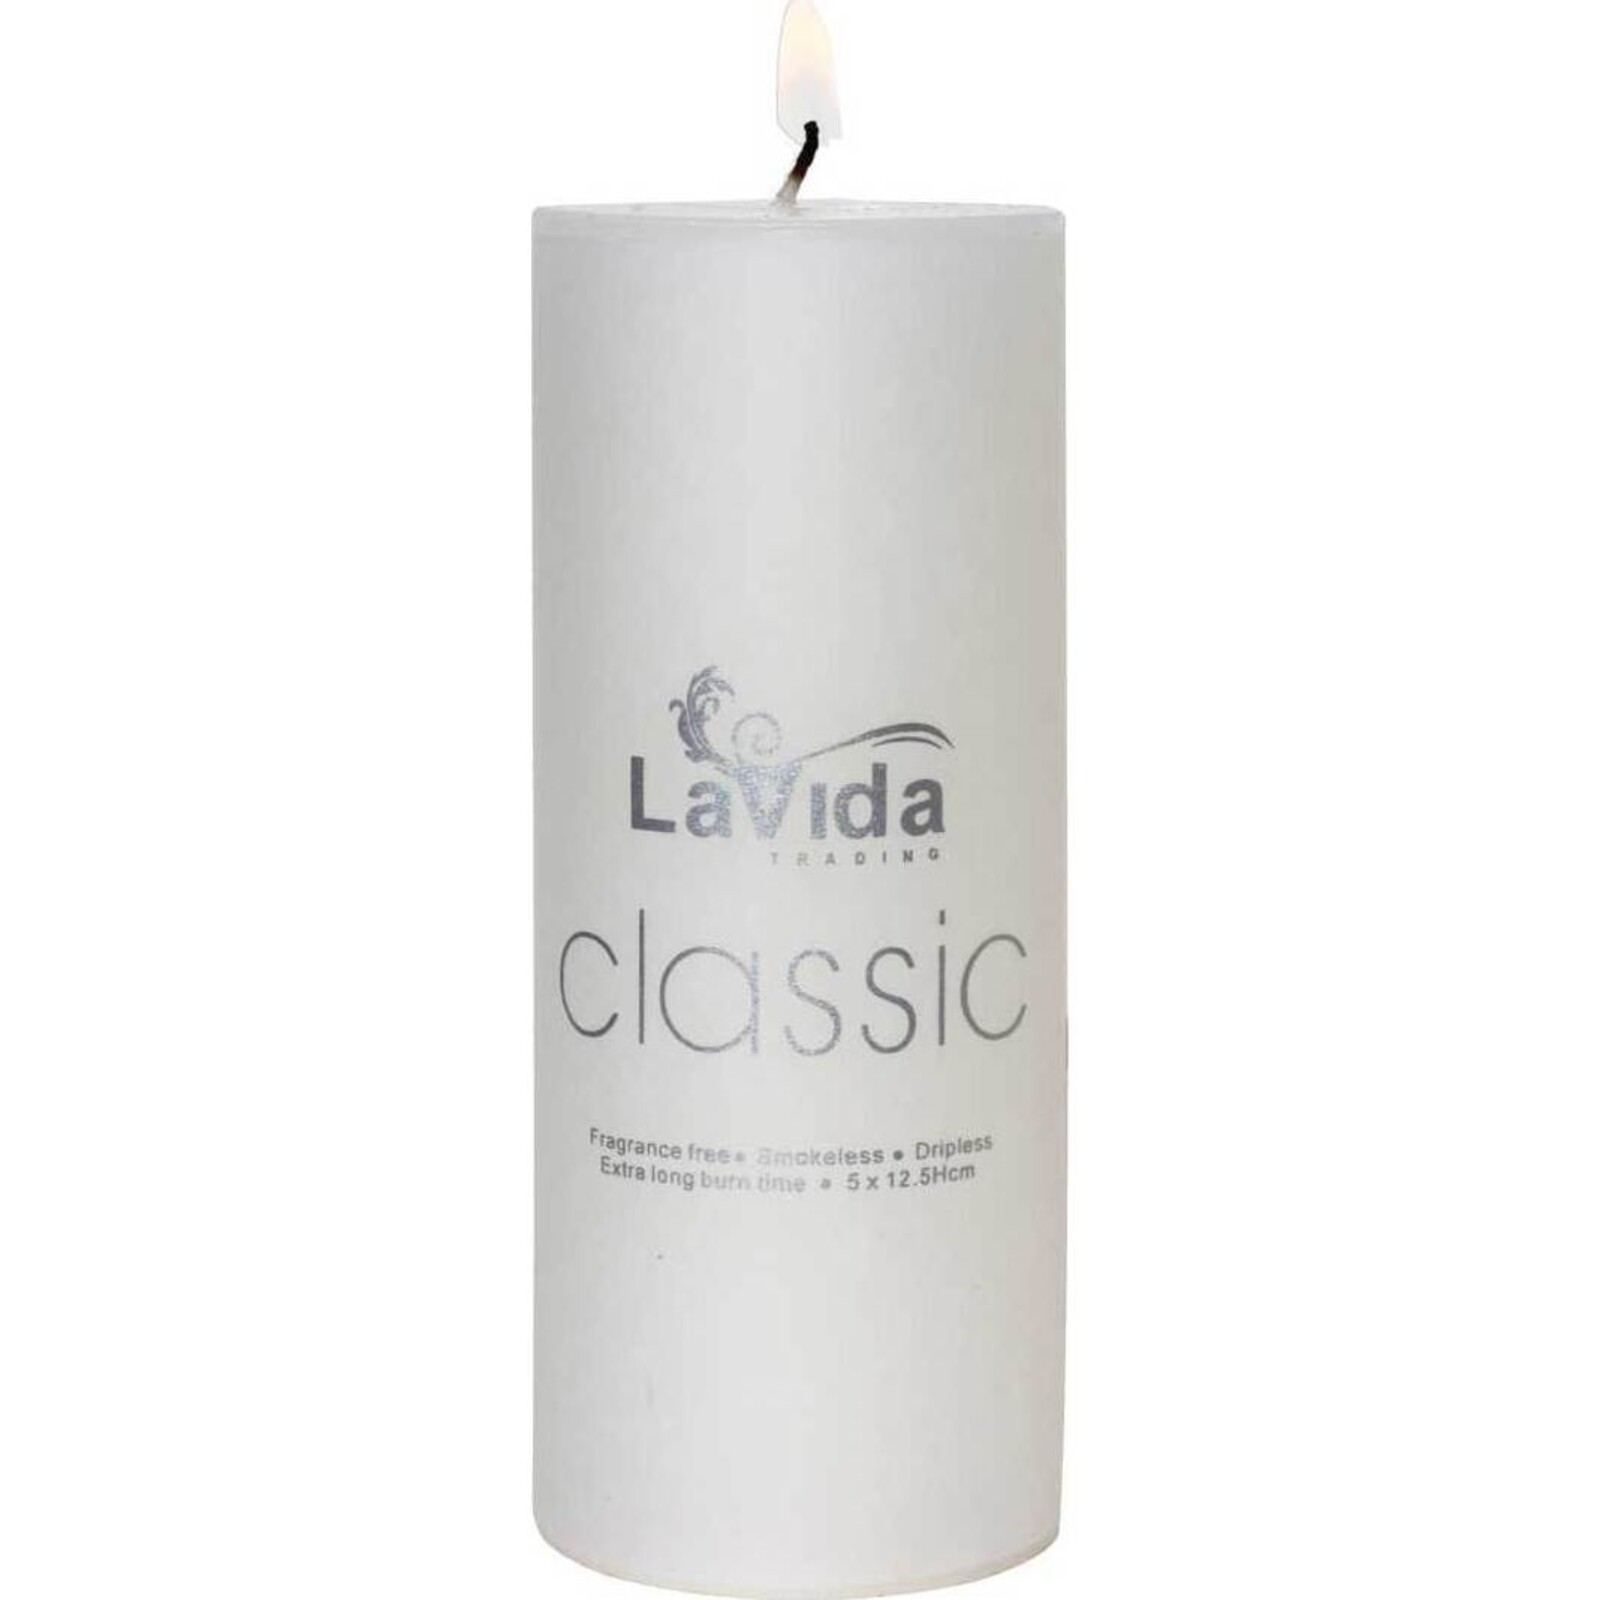 Classic Candle Tall